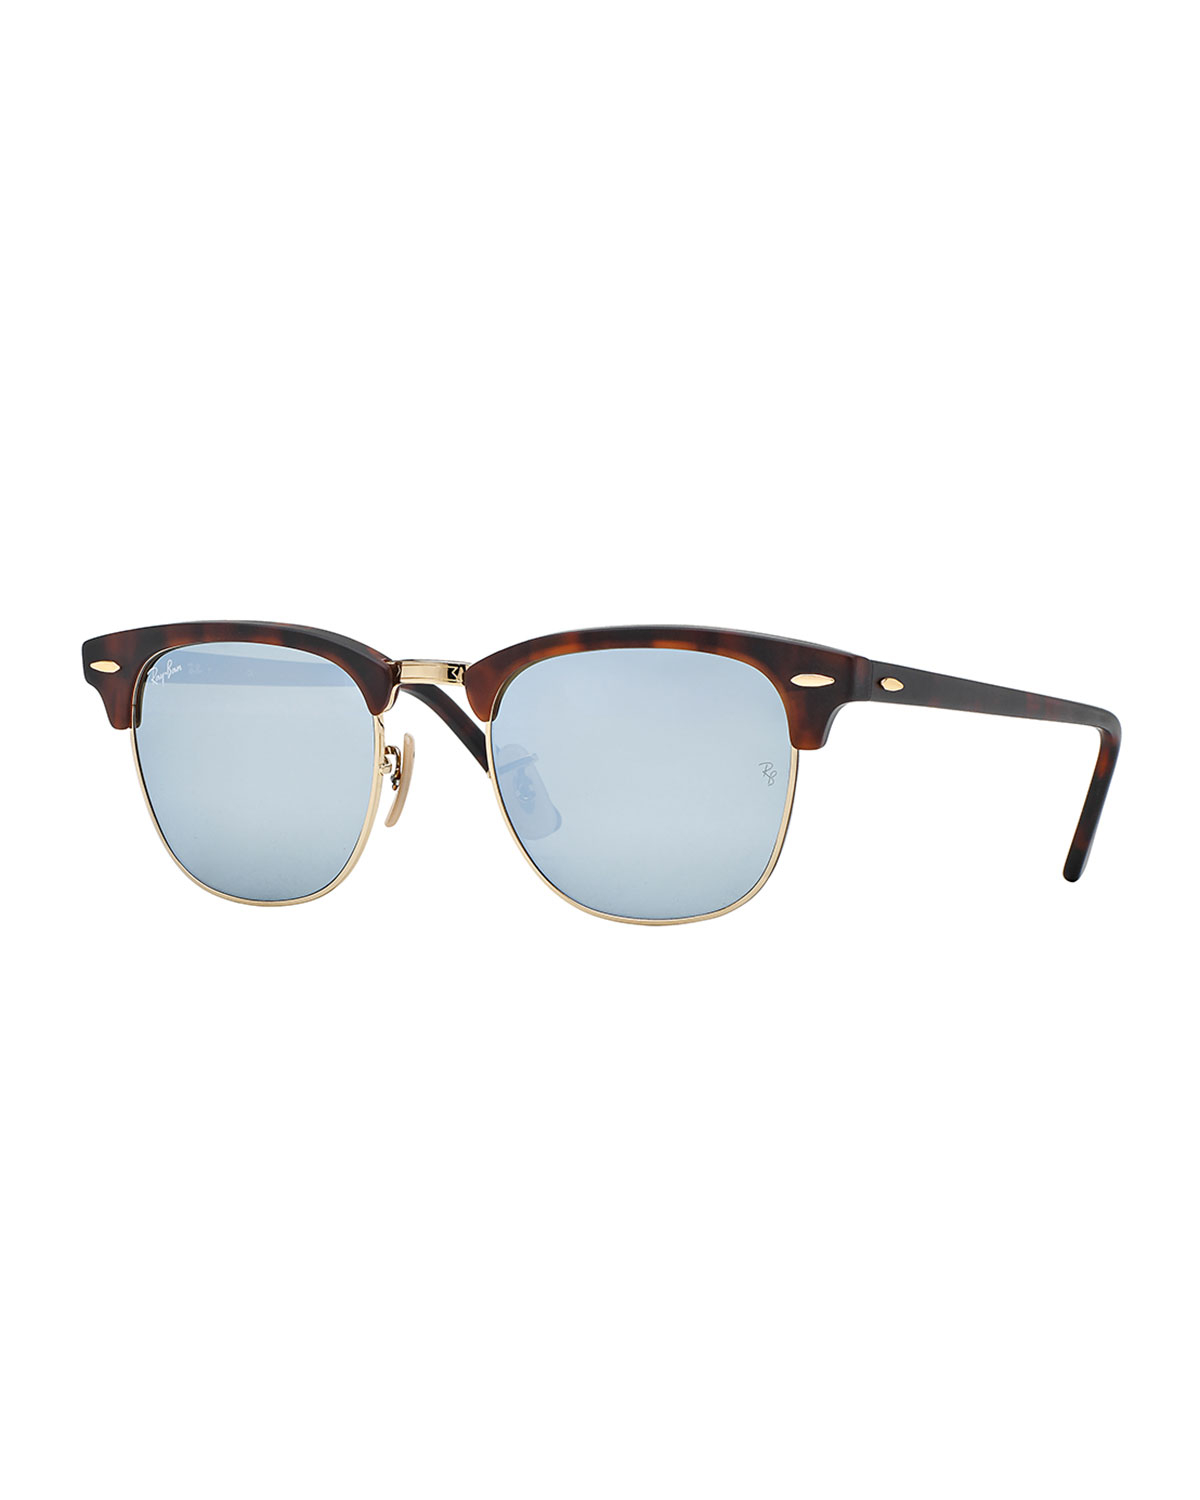 11deaa1879c Gallery. Previously sold at  Bergdorf Goodman · Men s Mirrored Sunglasses  Men s Ray Ban Clubmaster ...